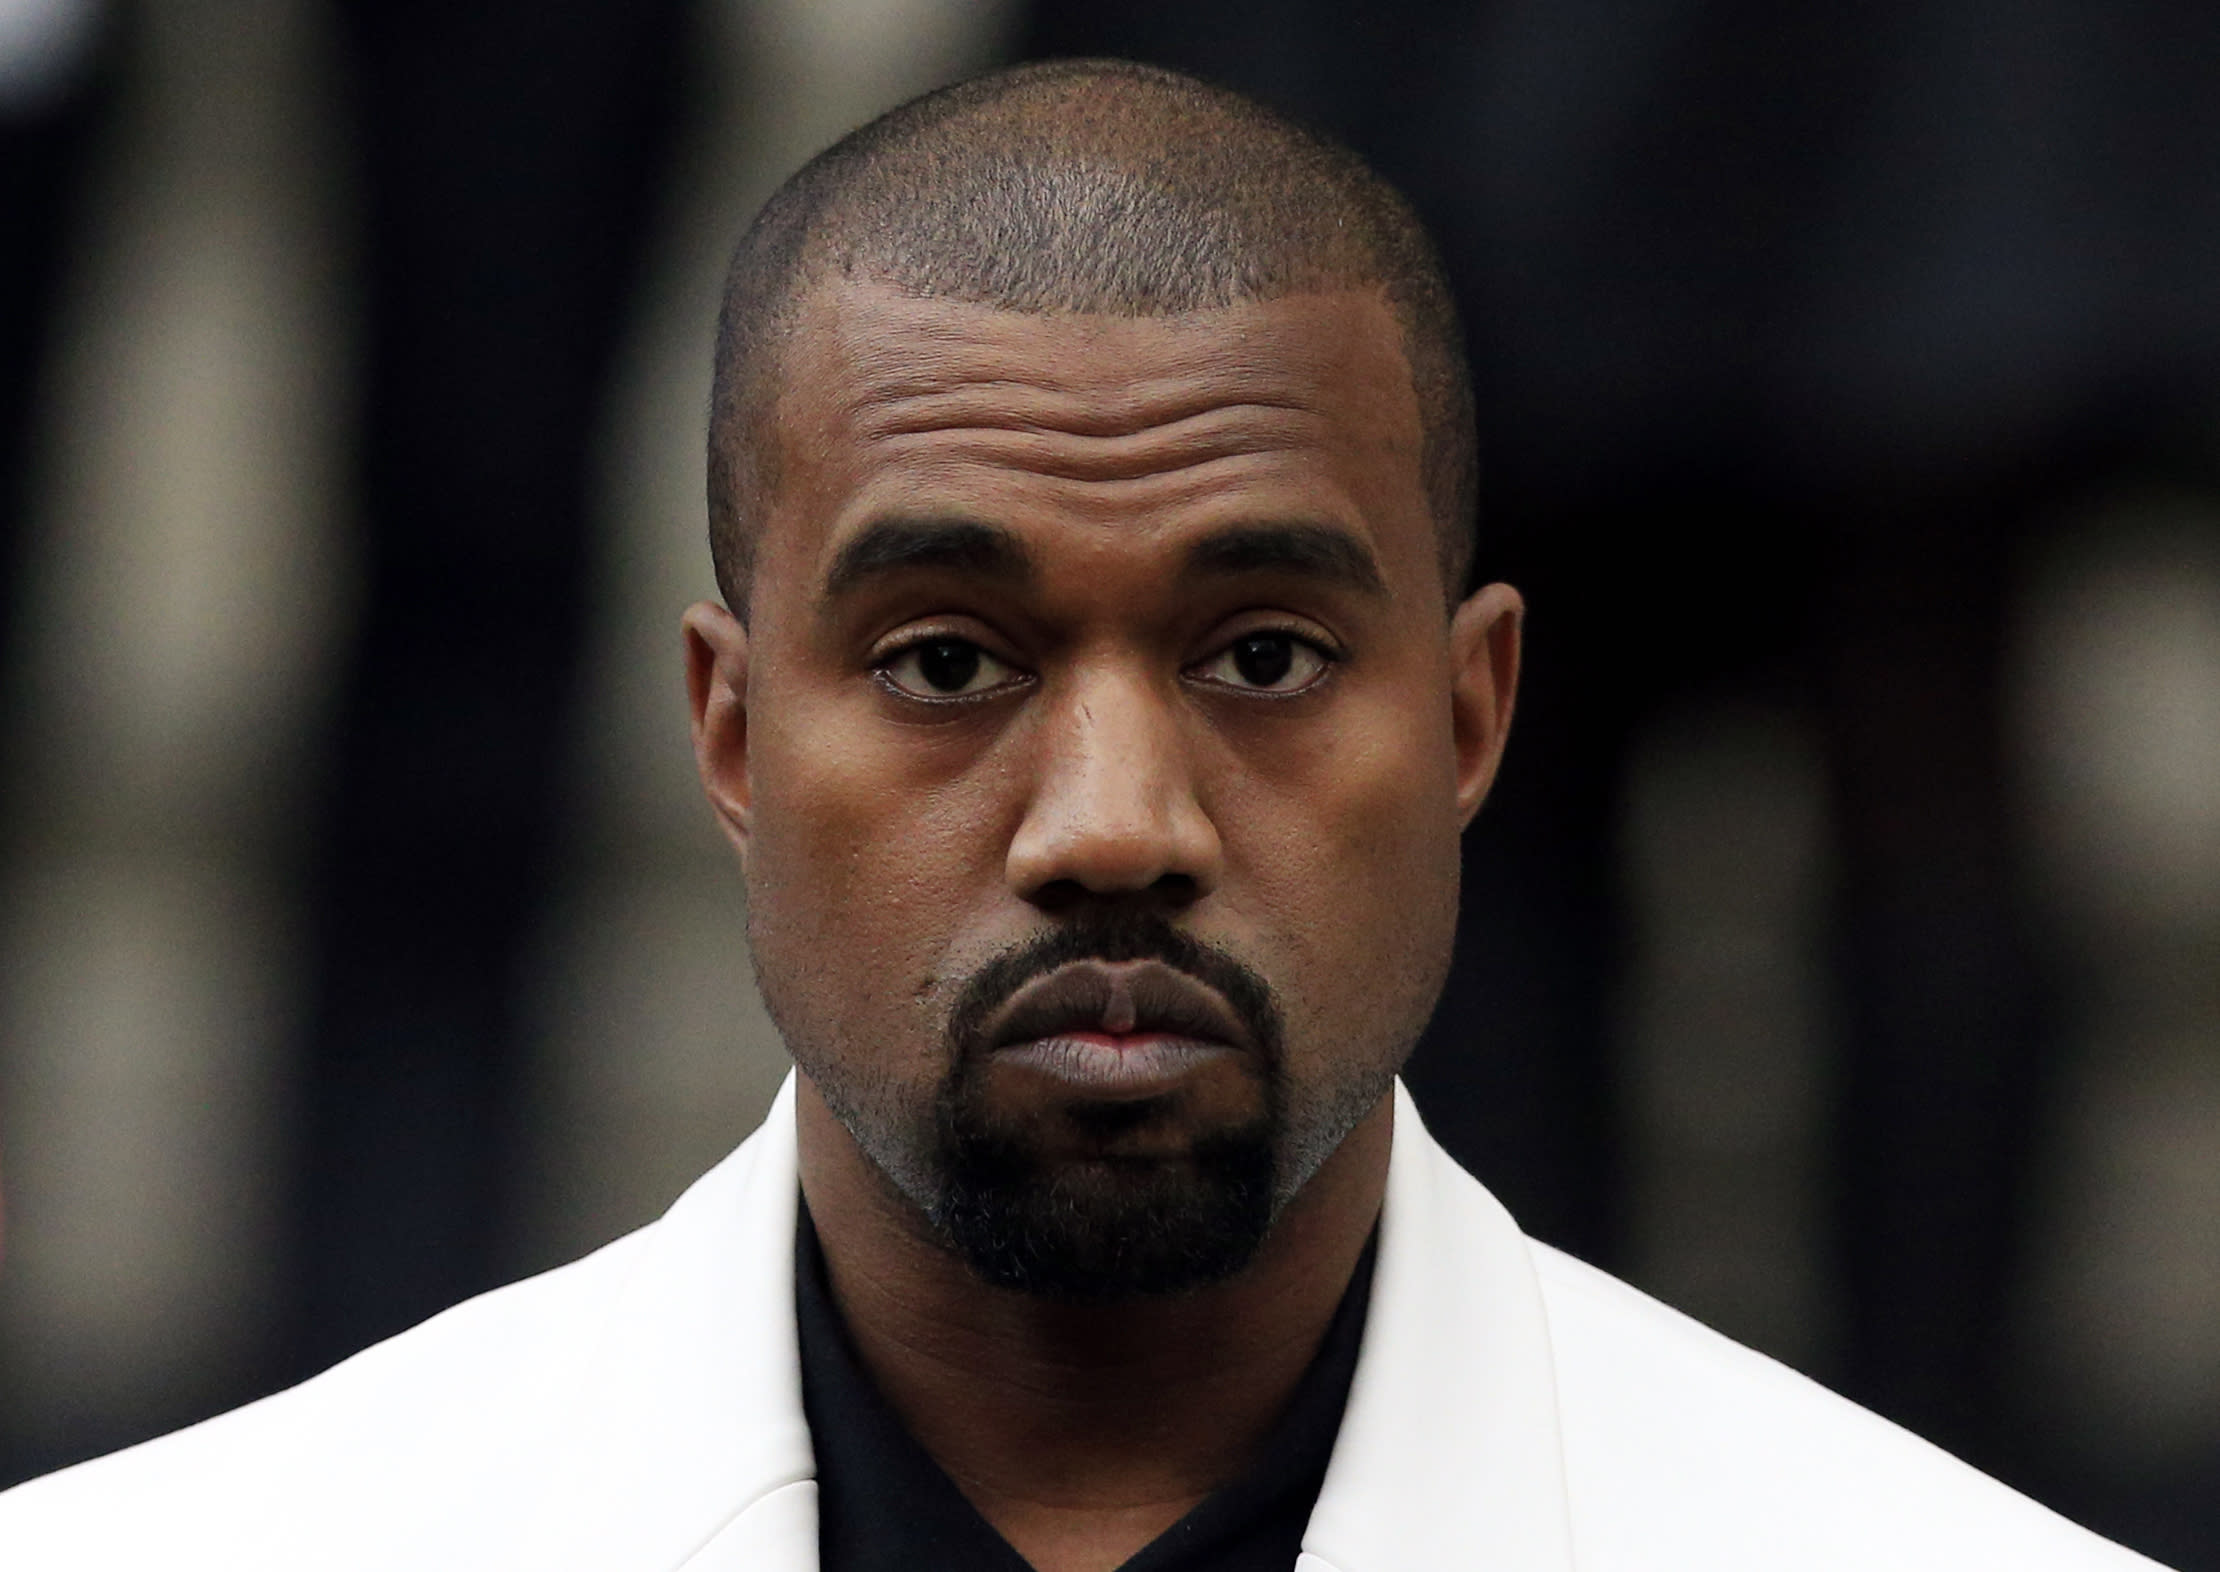 <p>Kanye West professed his adoration for Trump in a series of tweets showing off his signed MAGA hat, and said: 'I don't agree with everything anyone does. That's what makes us individuals.' (PA) </p>